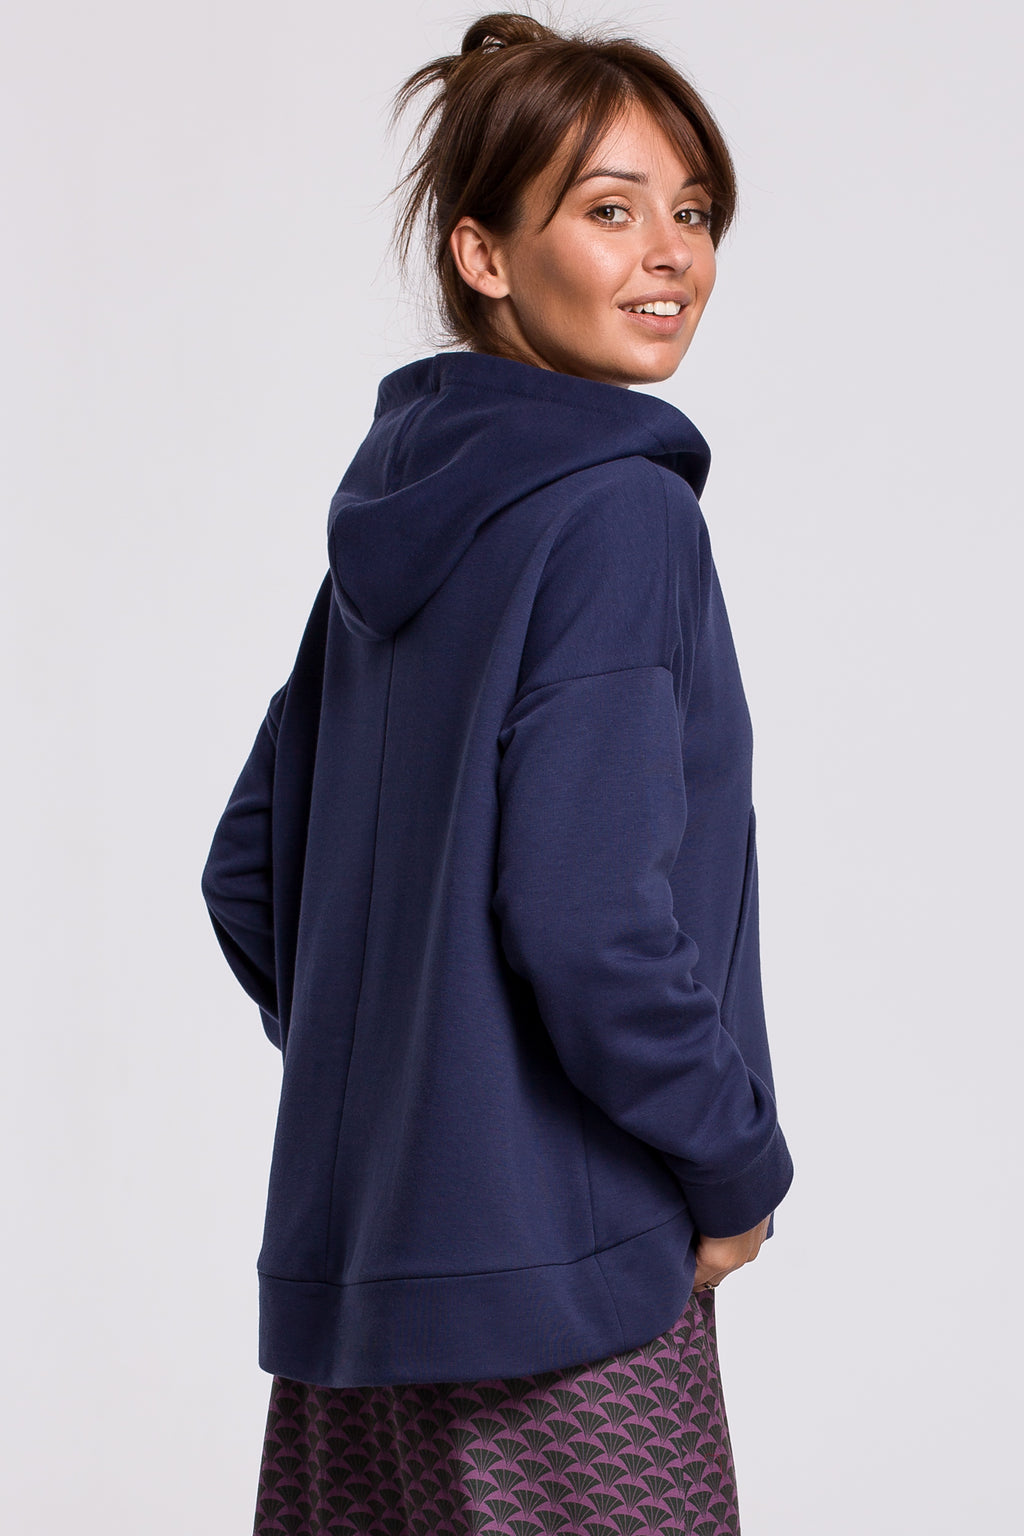 Blue Hooded Sweatshirt With A Zip Neckline And Kangaroo Pocket - So Chic Boutique